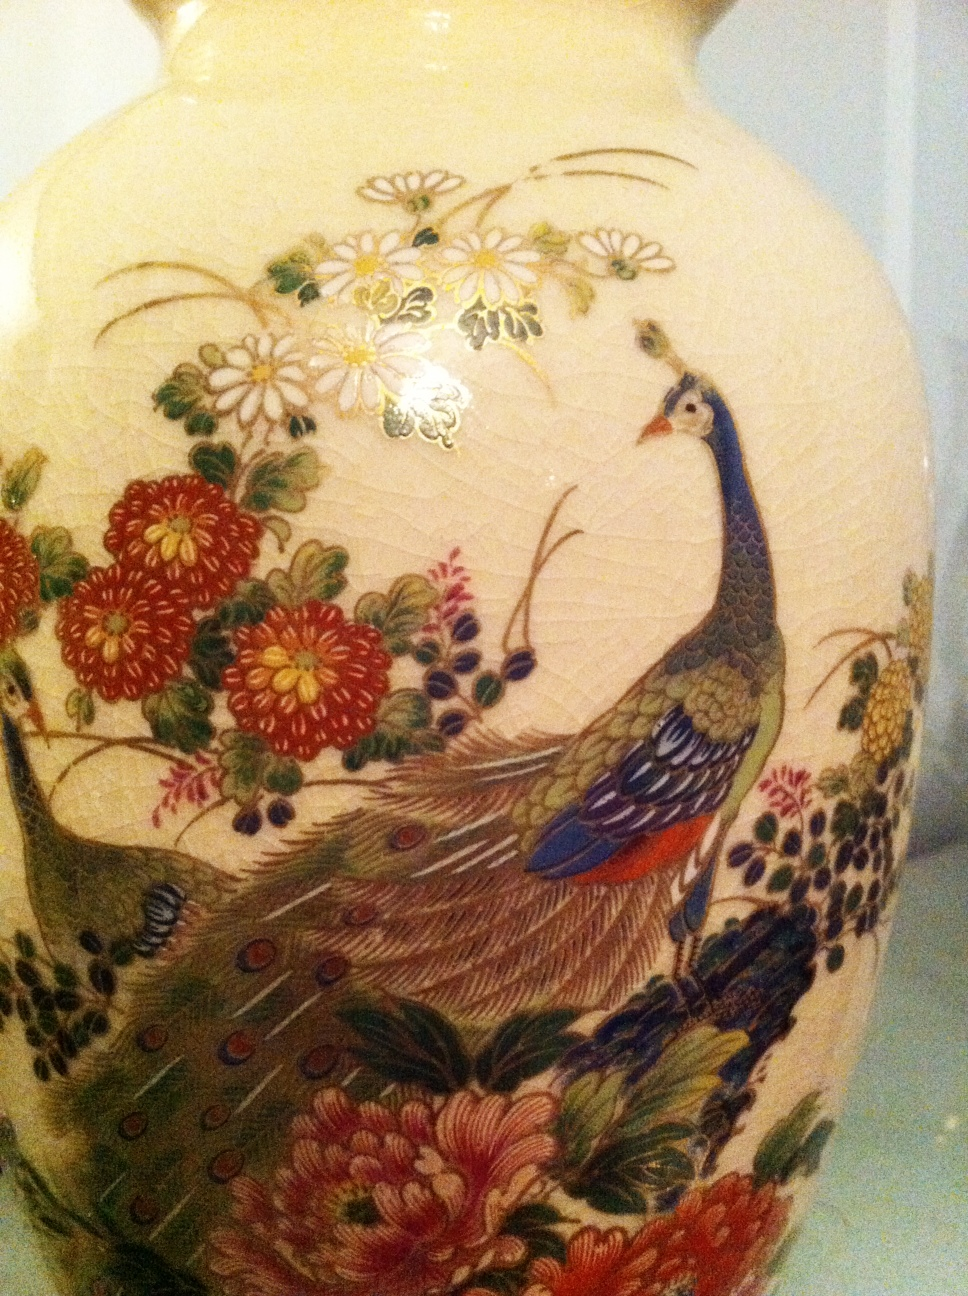 Lady janes treasure trove sold vintage japanese peacock vase 15 in chinese and japanese art the peacock symbolizes beauty and dignity this vase is lovely with or without the enhancement of flowers reviewsmspy